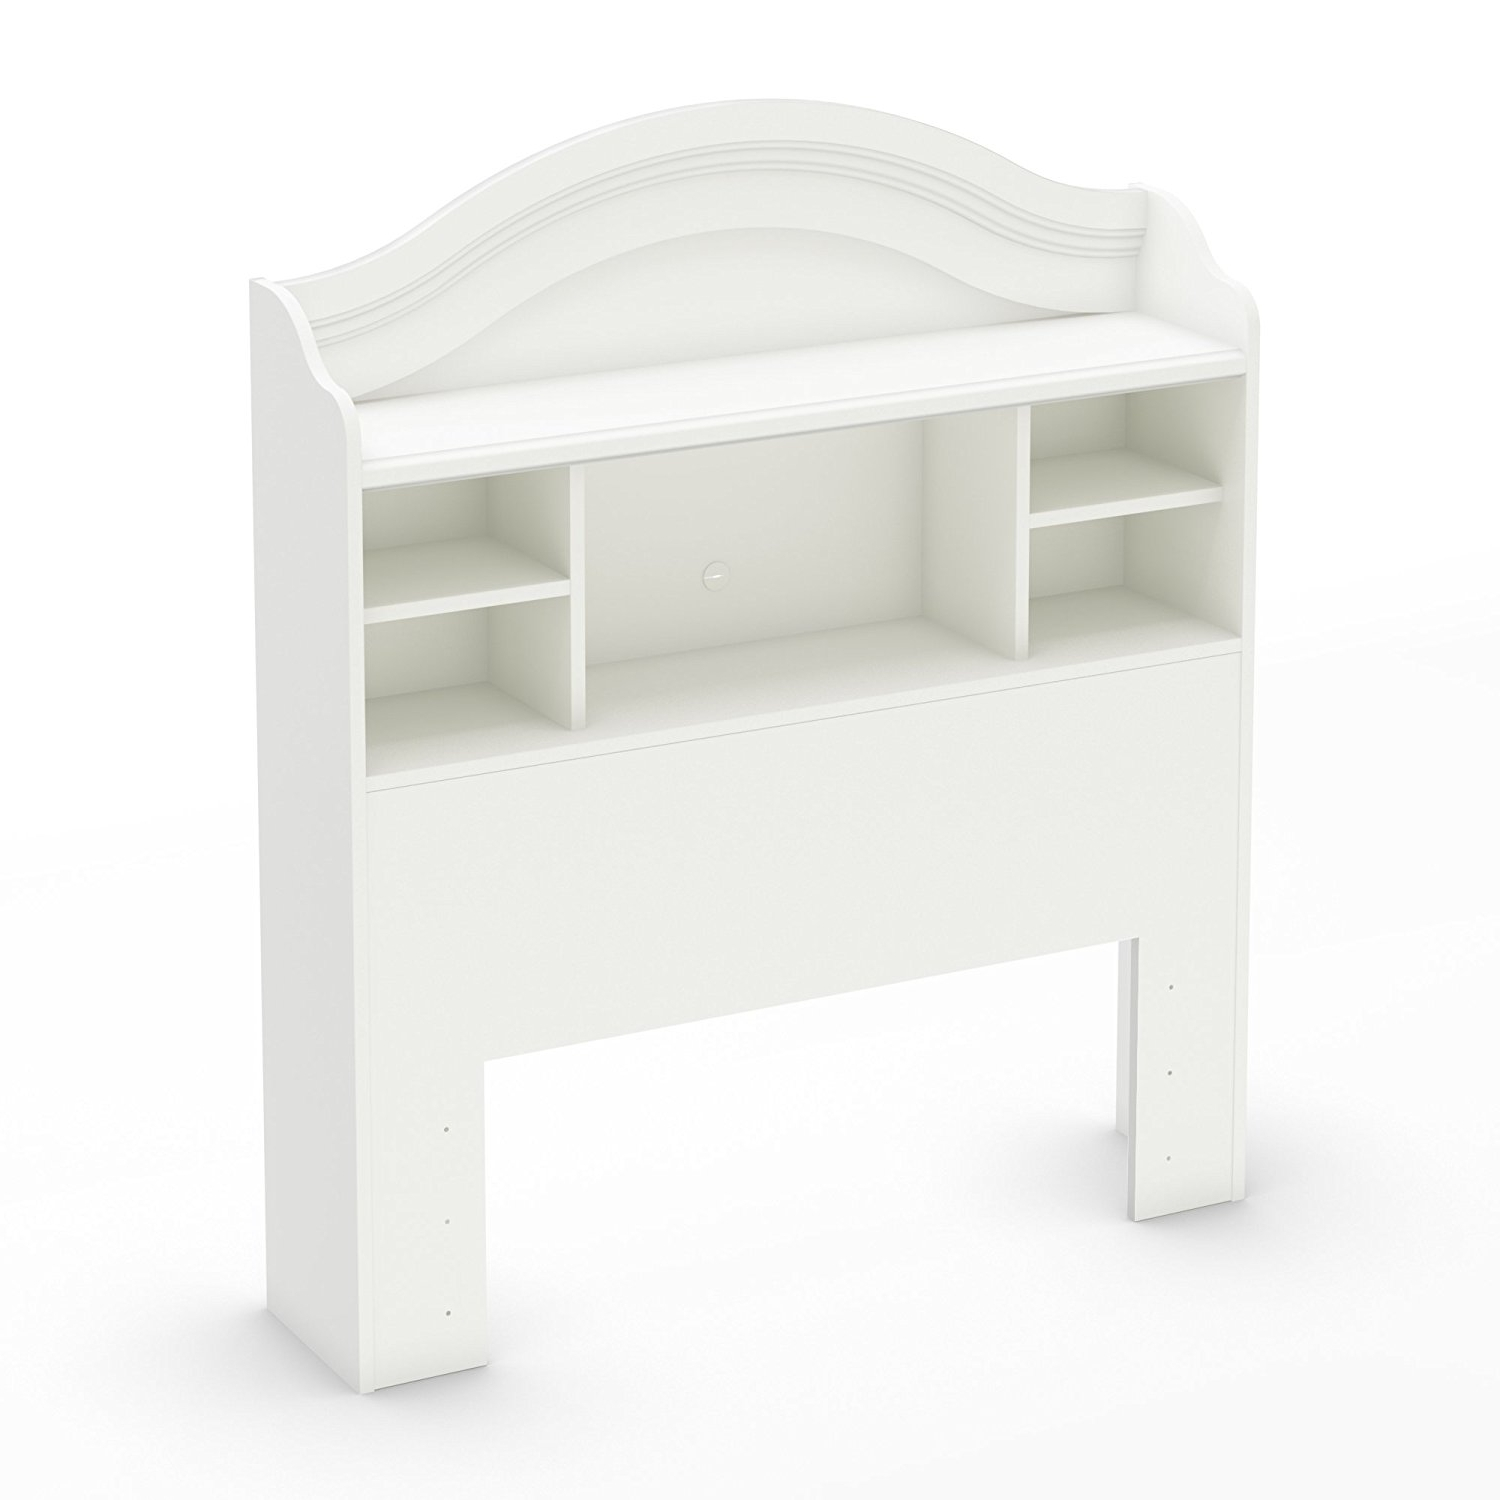 Most Current Amazon: South Shore Savannah Twin Bookcase Headboard, Pure Regarding Twin Headboard Bookcases (View 6 of 15)